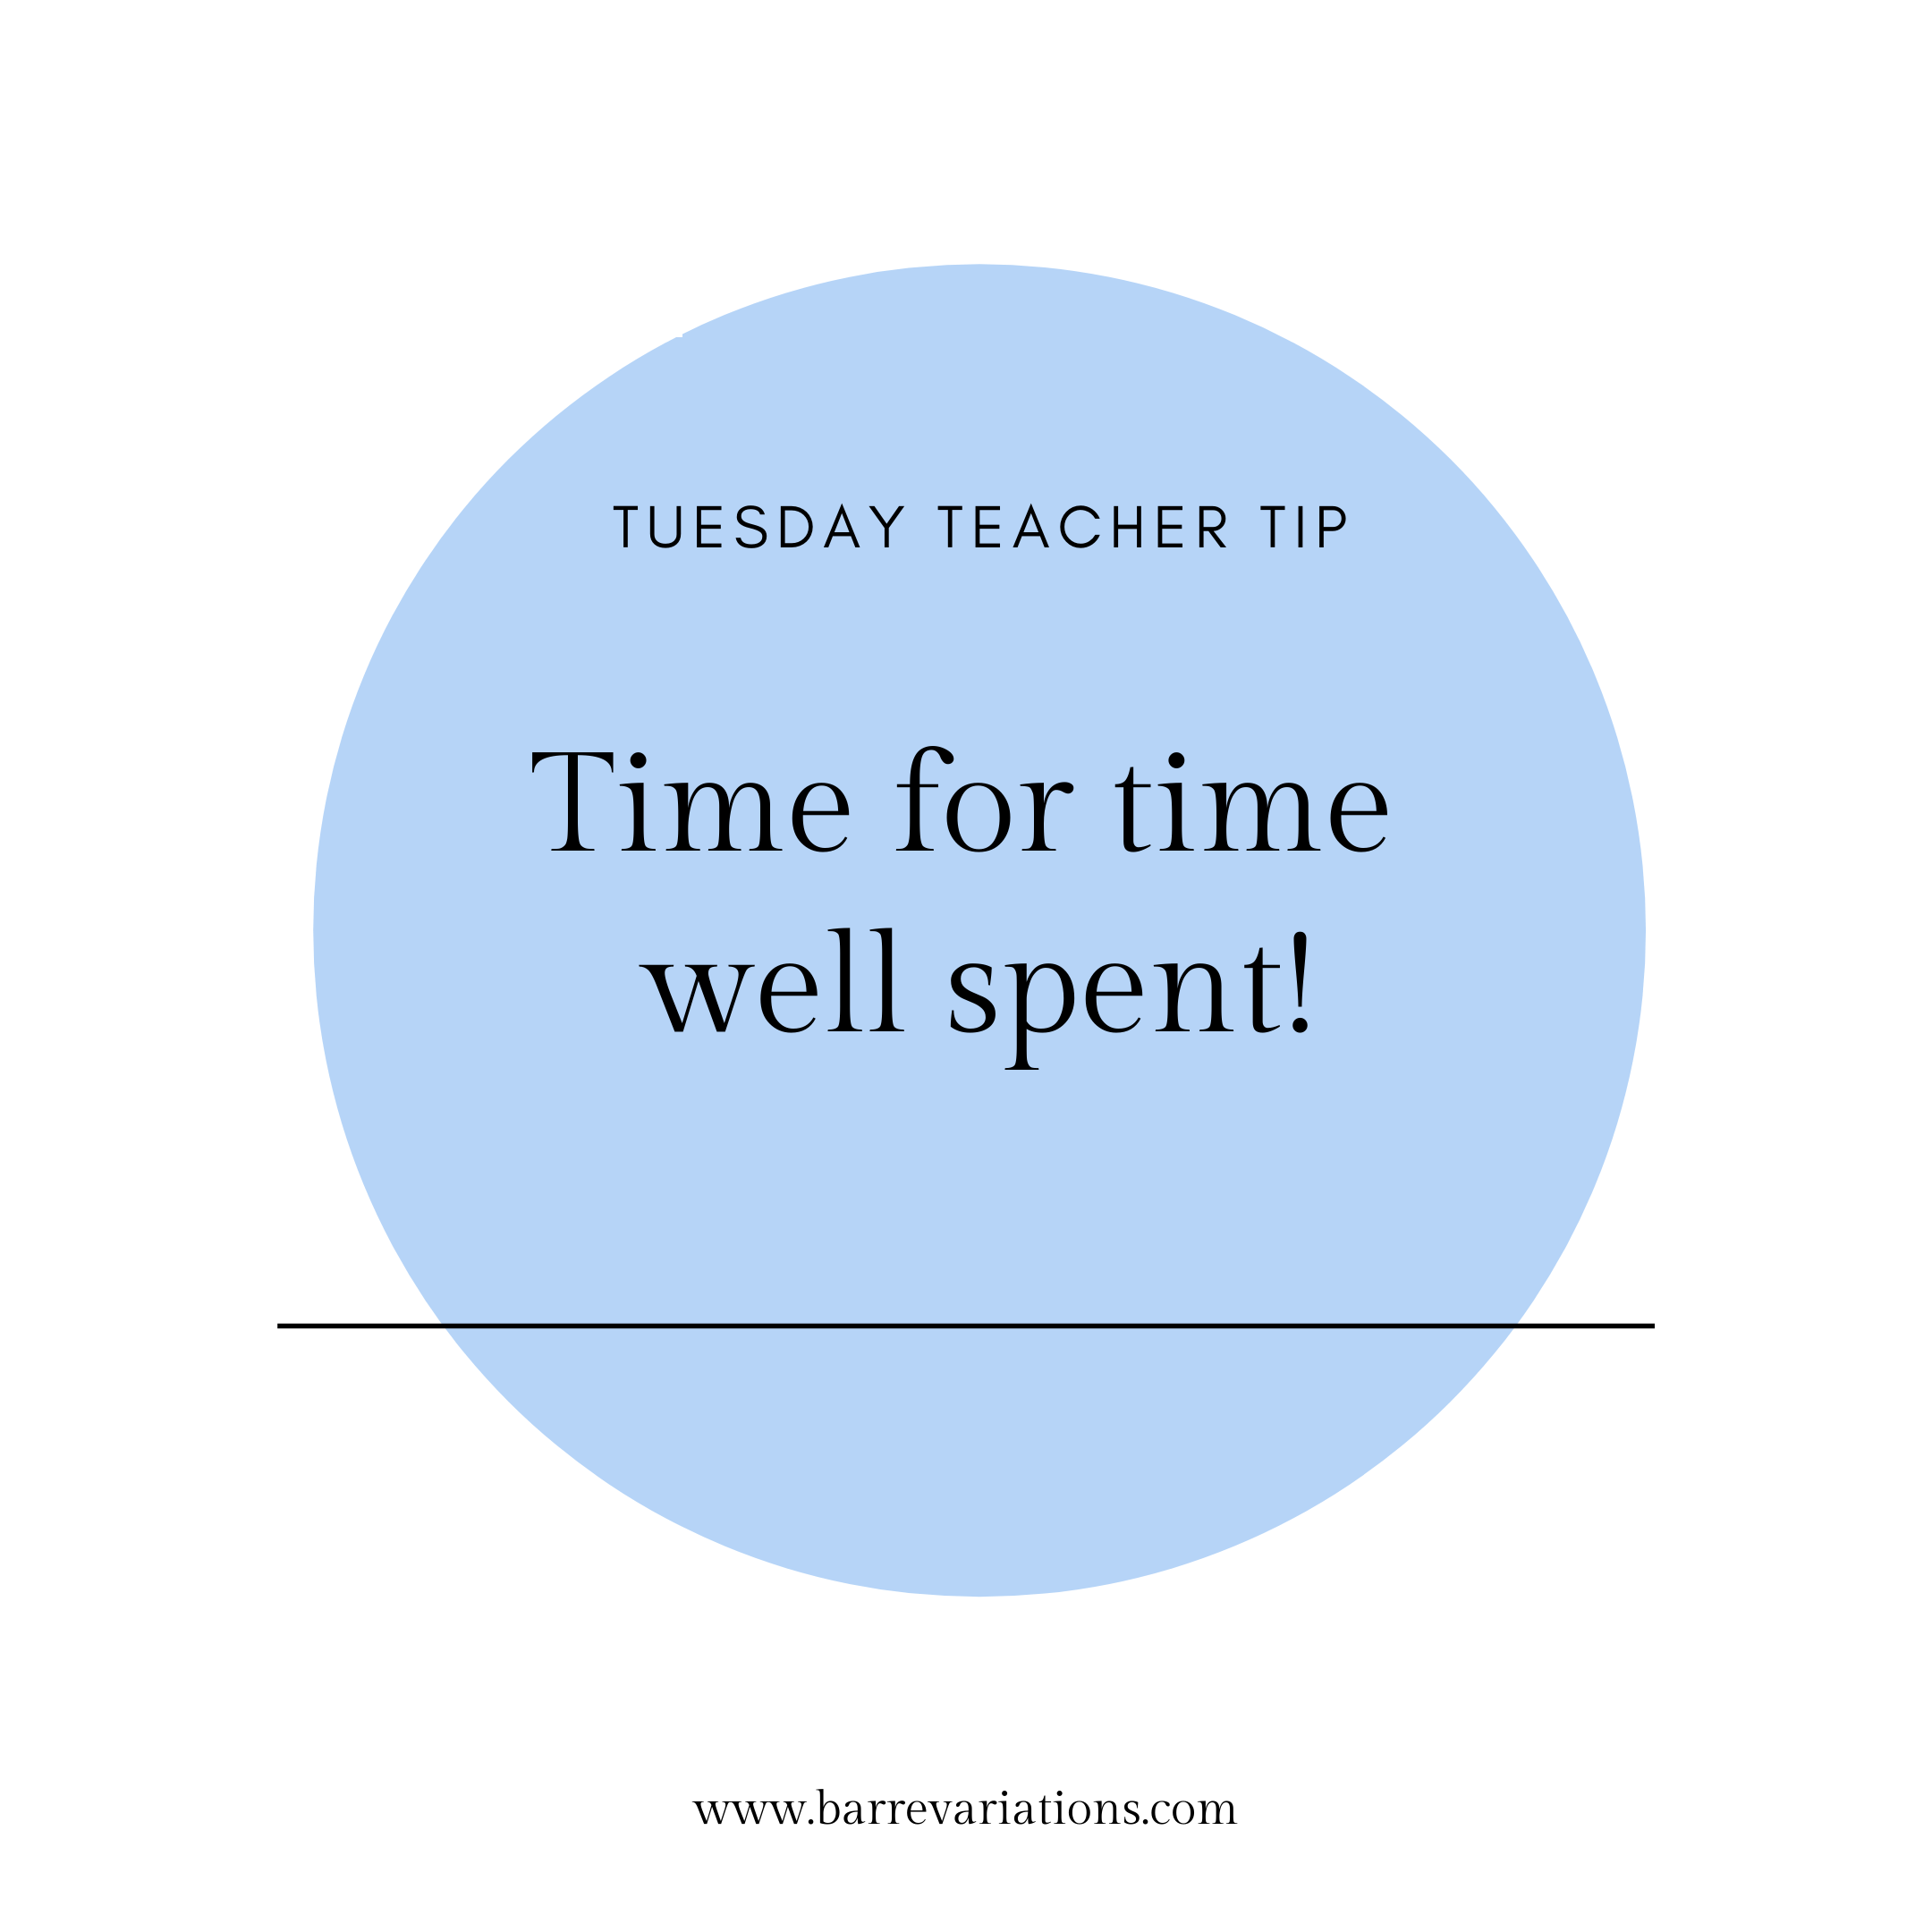 image of teacher tip time for time well spent